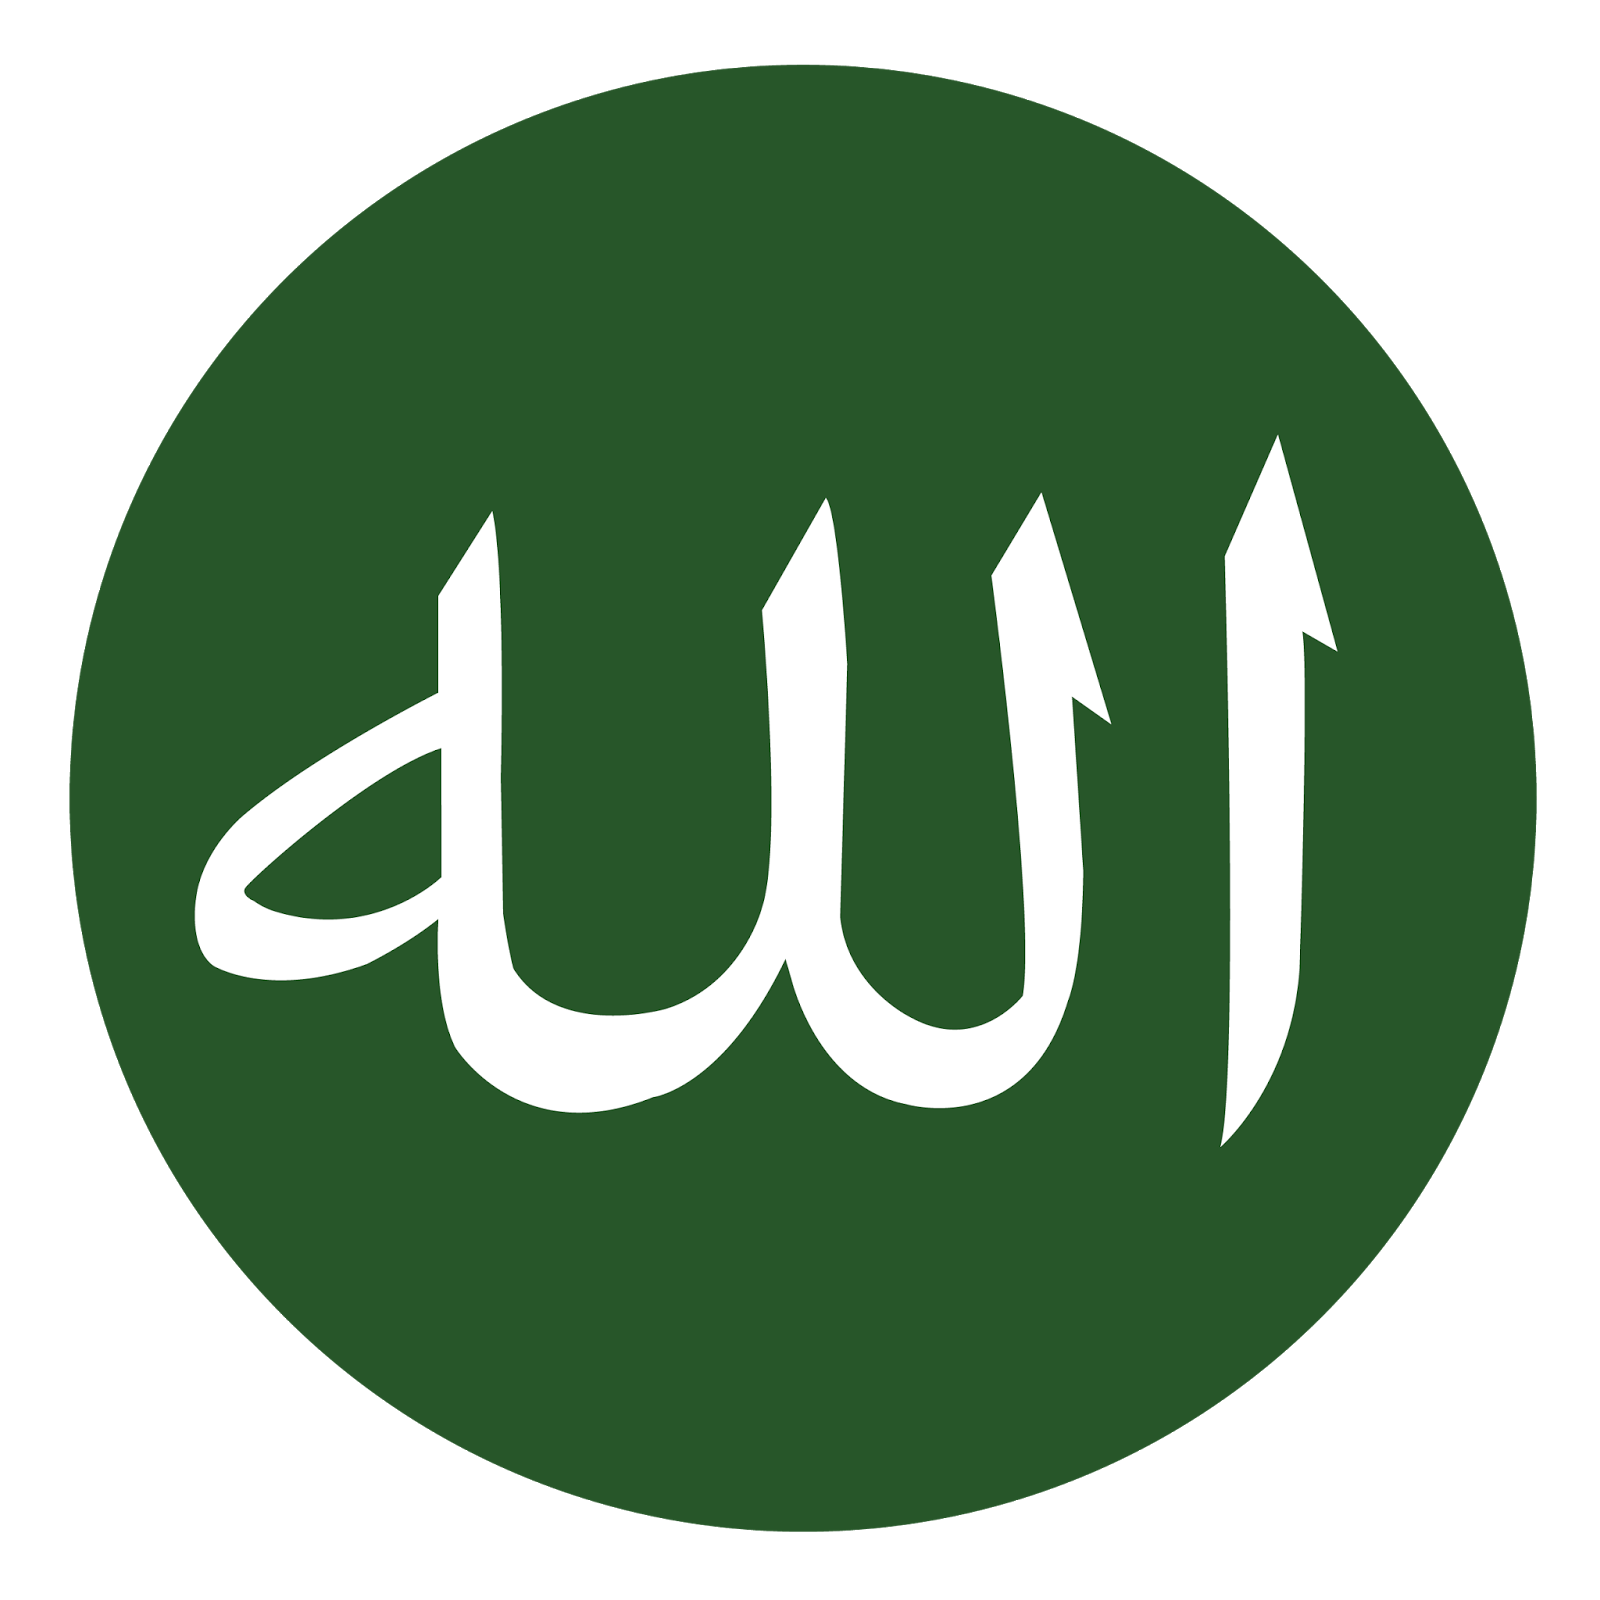 Allah large image in Green